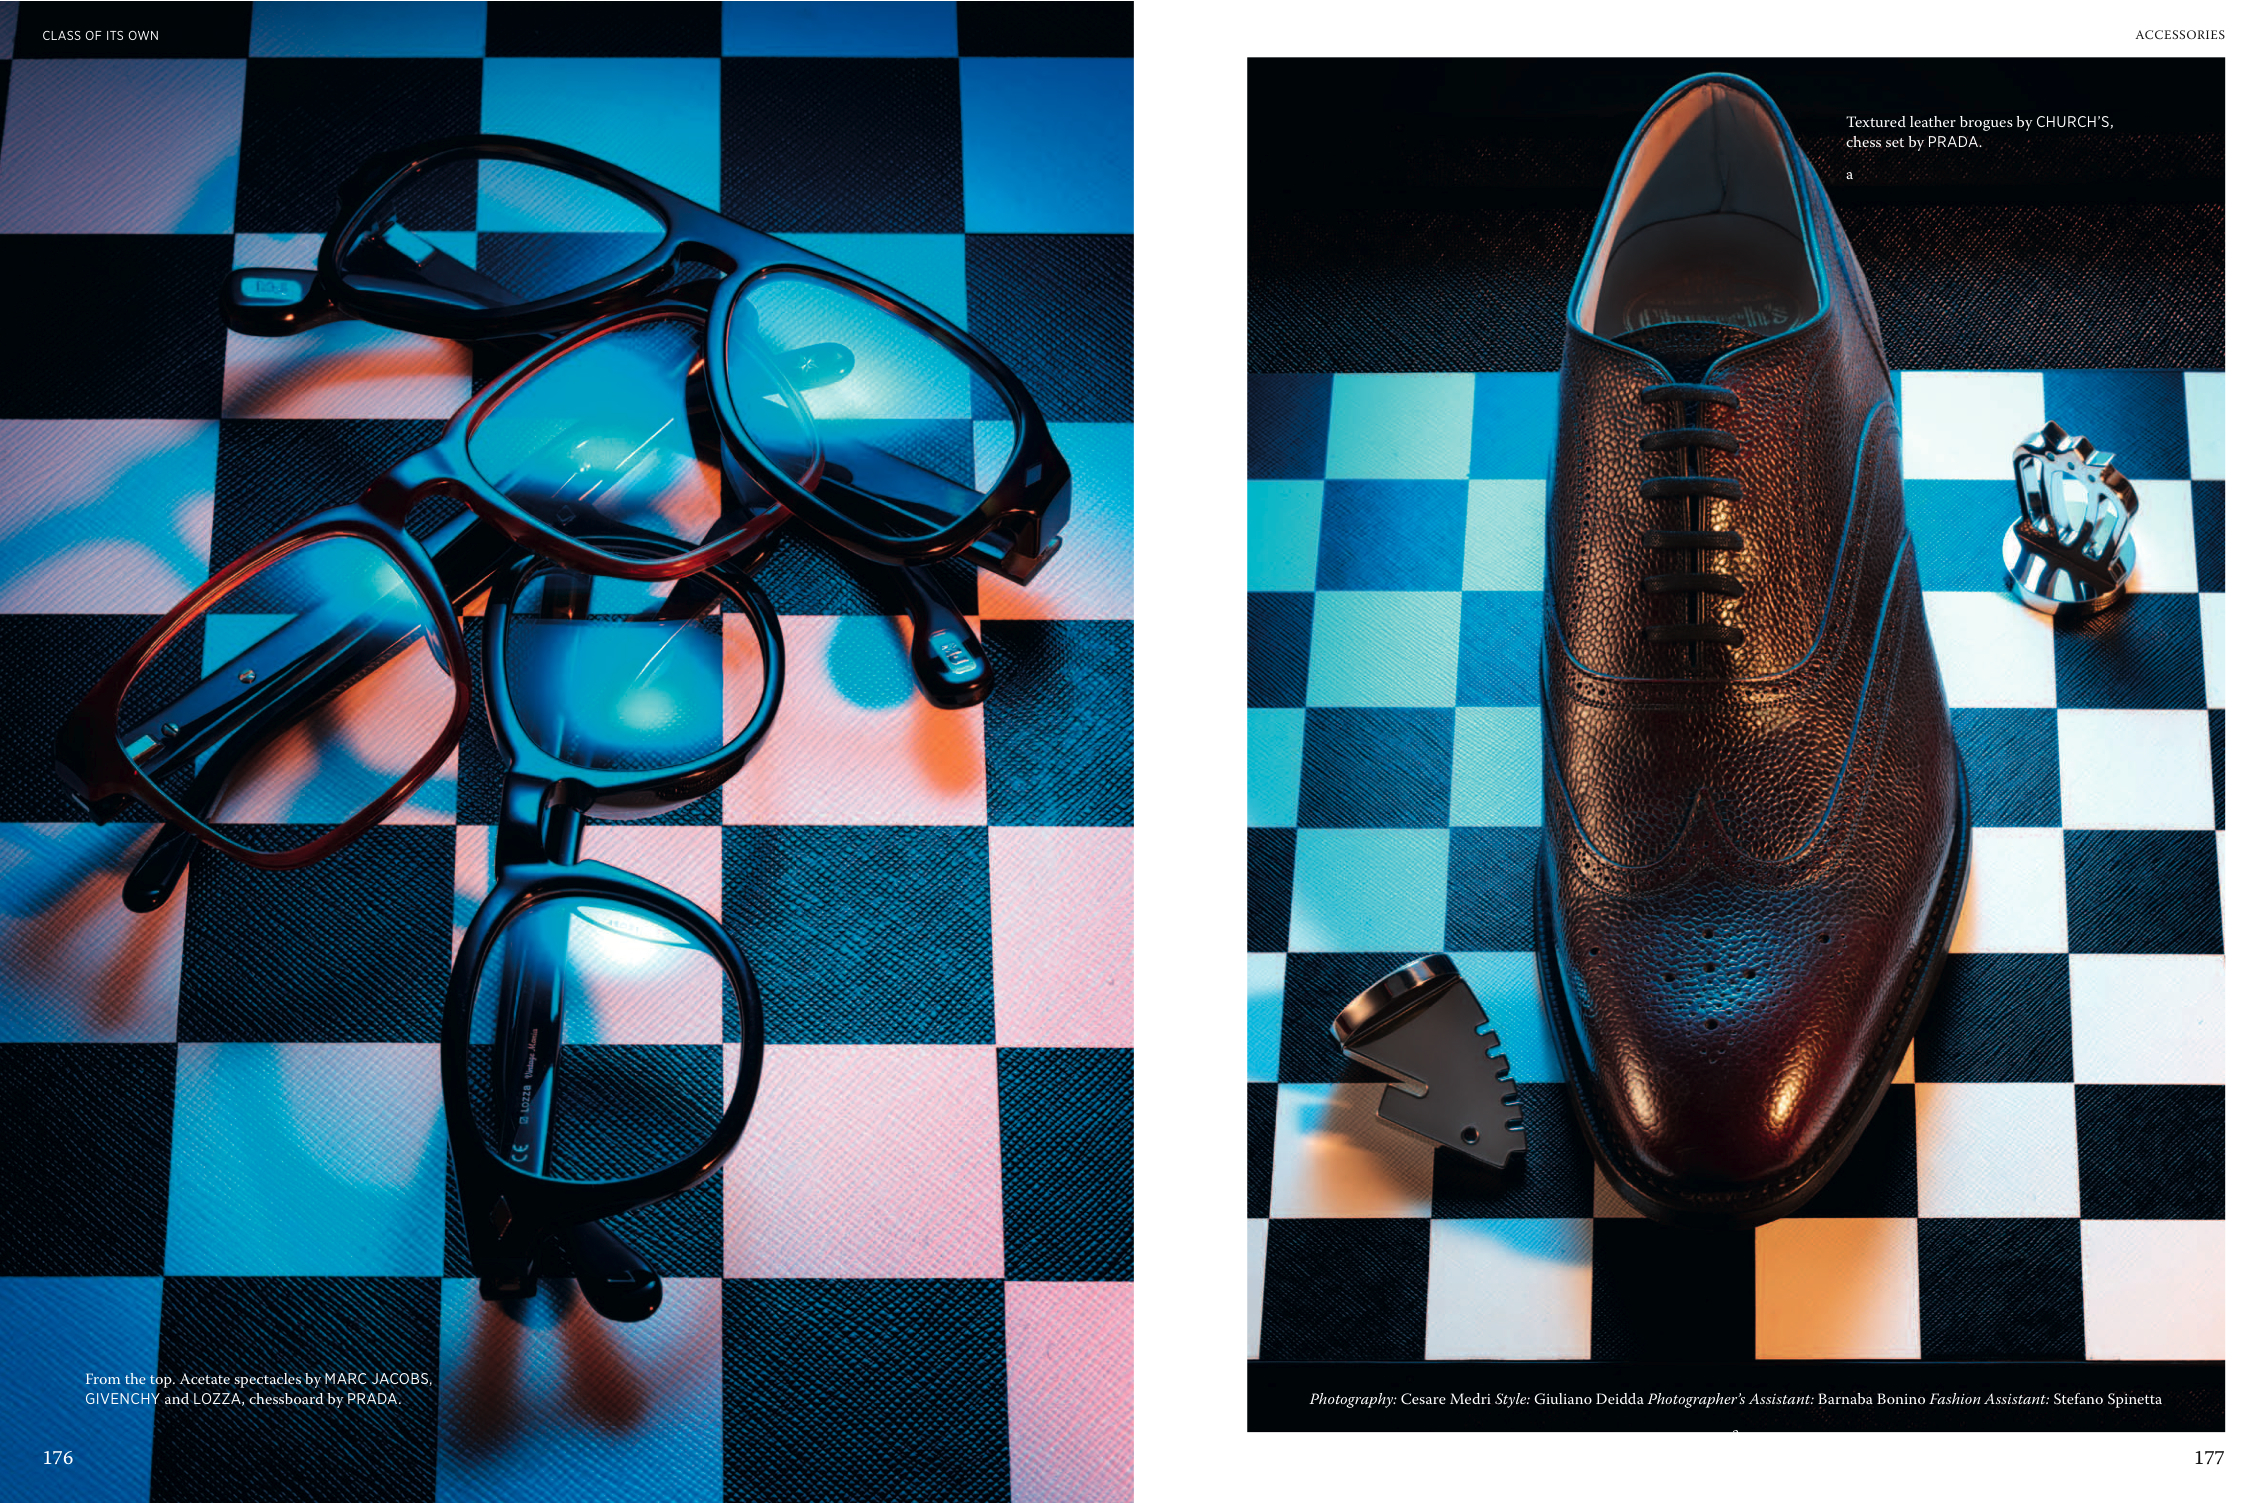 Spectacles by MARC JACOBS, GIVENCHY and LOZZA, brogues by CHURCH'S, chessboard by PRADA.